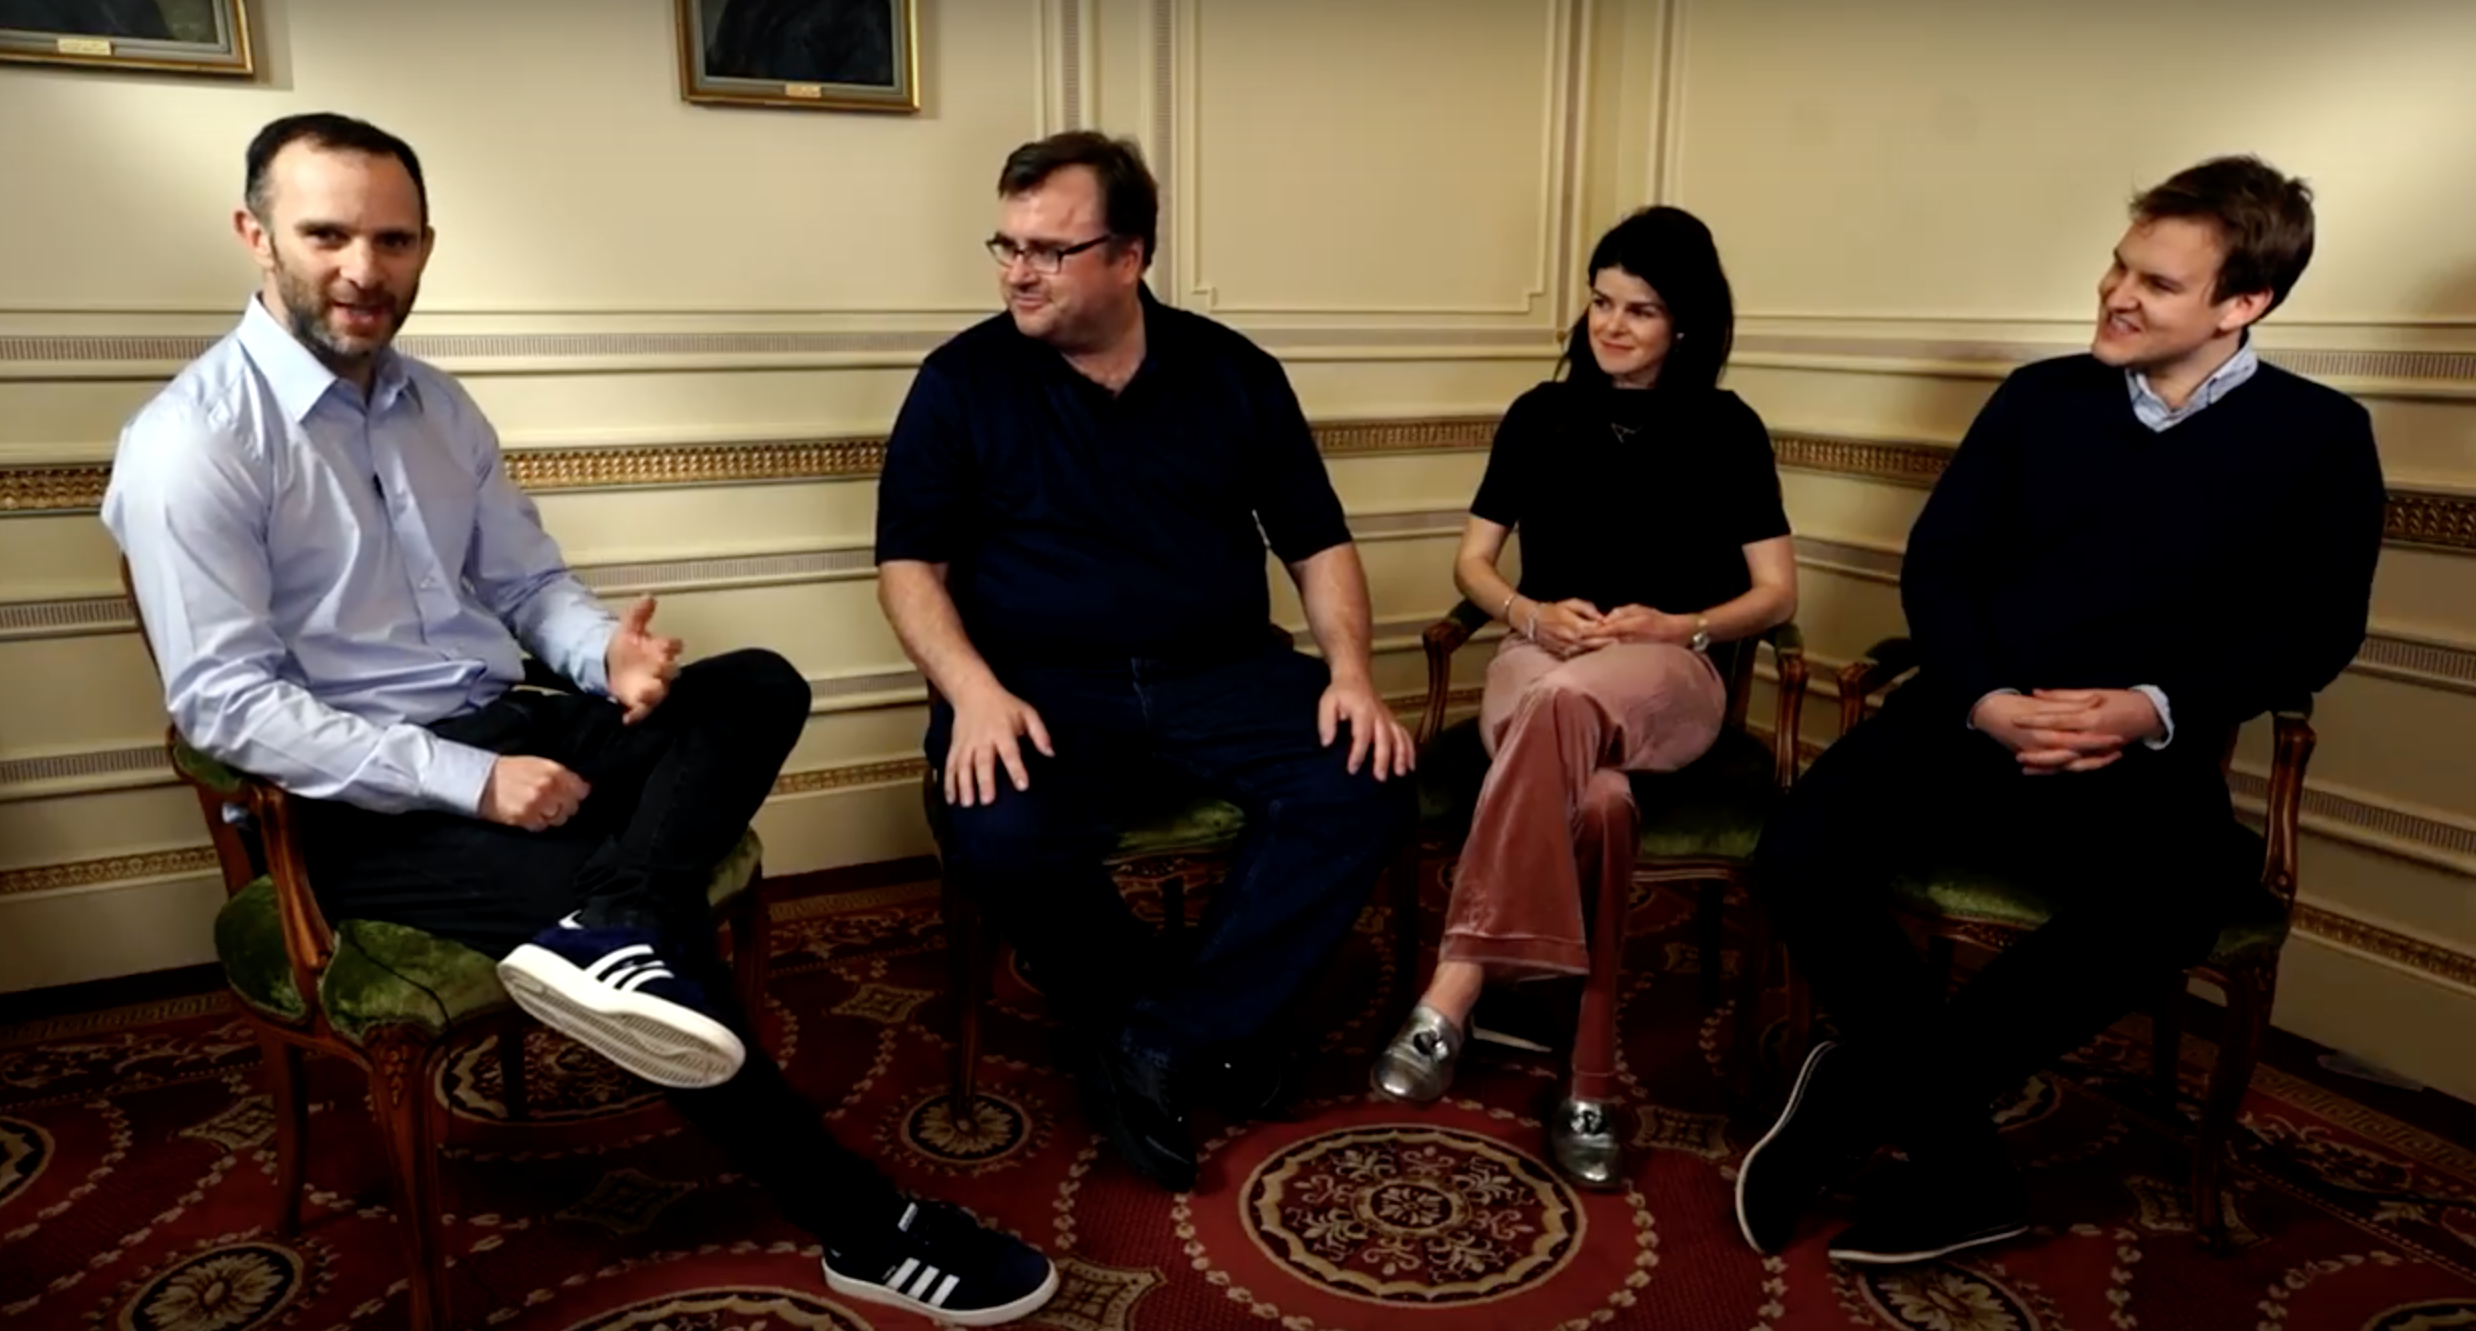 Mosaic Ventures and Entrepreneur First (EF) in conversation with Reid Hoffman